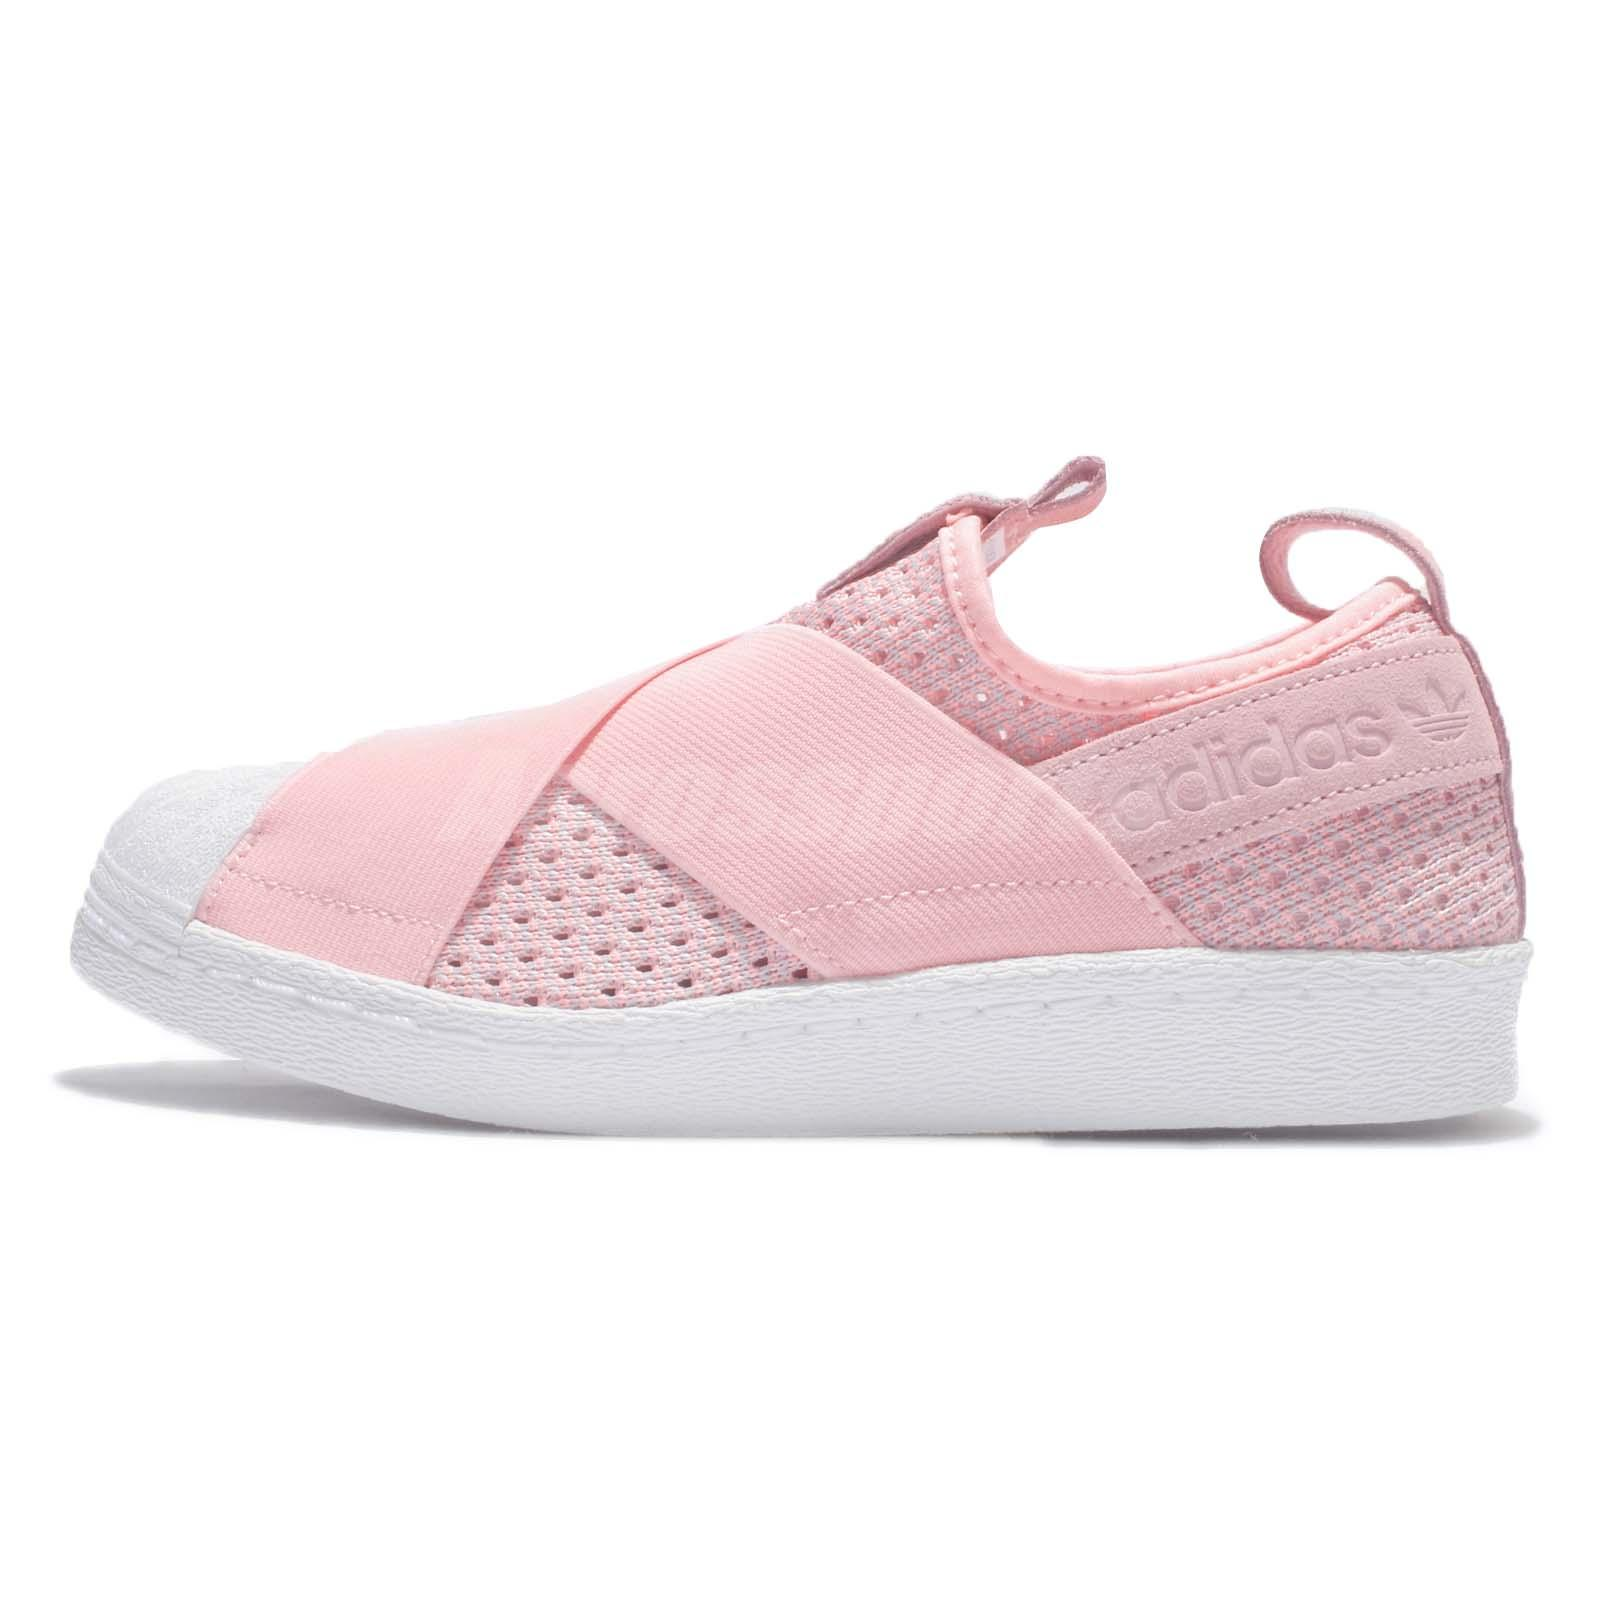 adidas Originals Superstar Slip On W Pink White Womens Casual Shoes BB2122